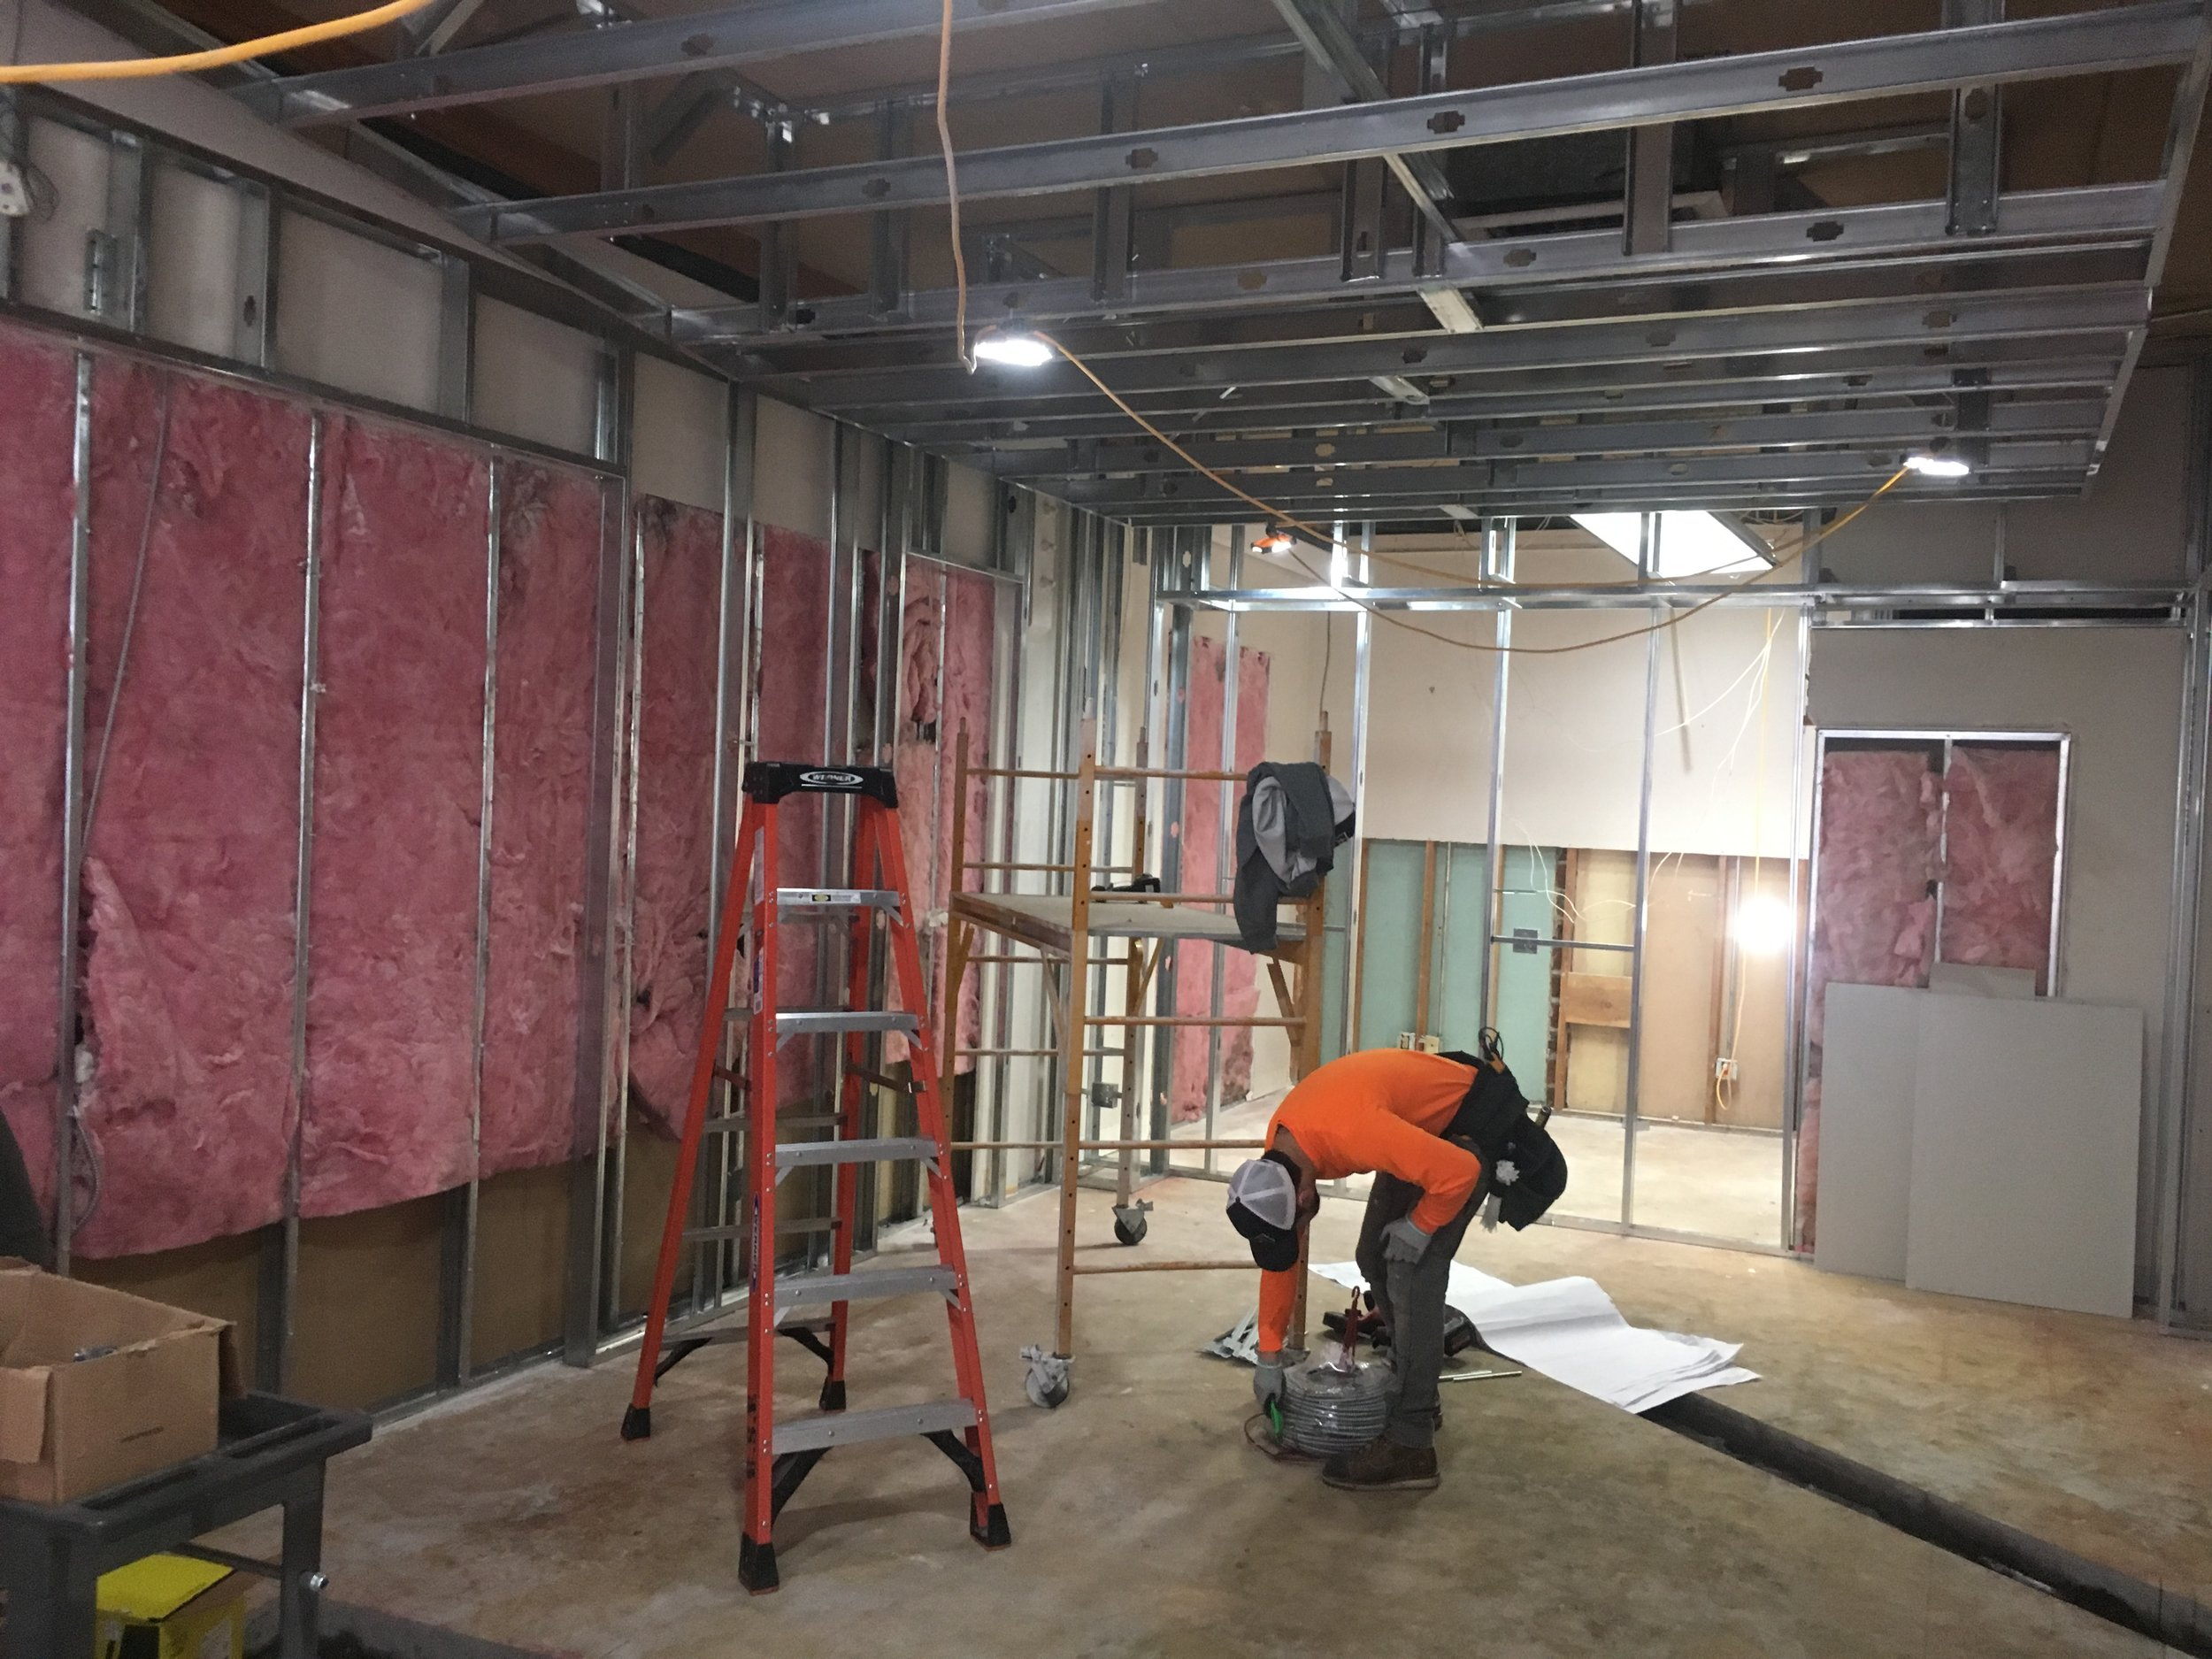 This view, looking into the space from what will be the expanded, front window area, shows the larger showroom and additional exam room entry. Image Courtesy: Eyes on Broadway